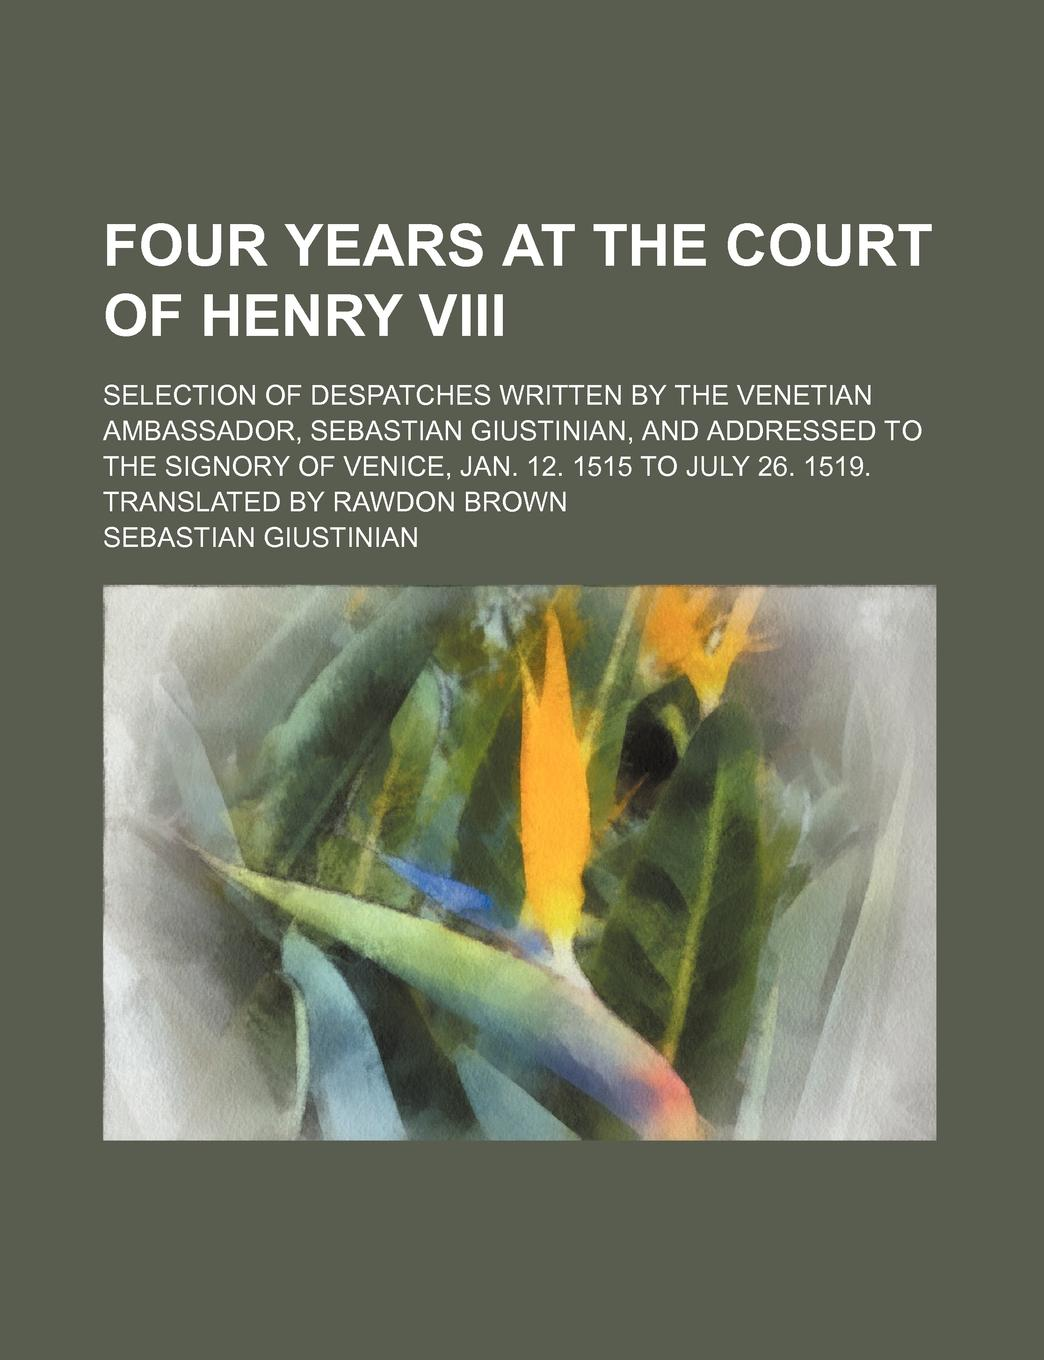 henry viii Sebastian Giustinian Four Years at the Court of Henry VIII; Selection of Despatches Written by the Venetian Ambassador, Sebastian Giustinian, and Addressed to the Signory